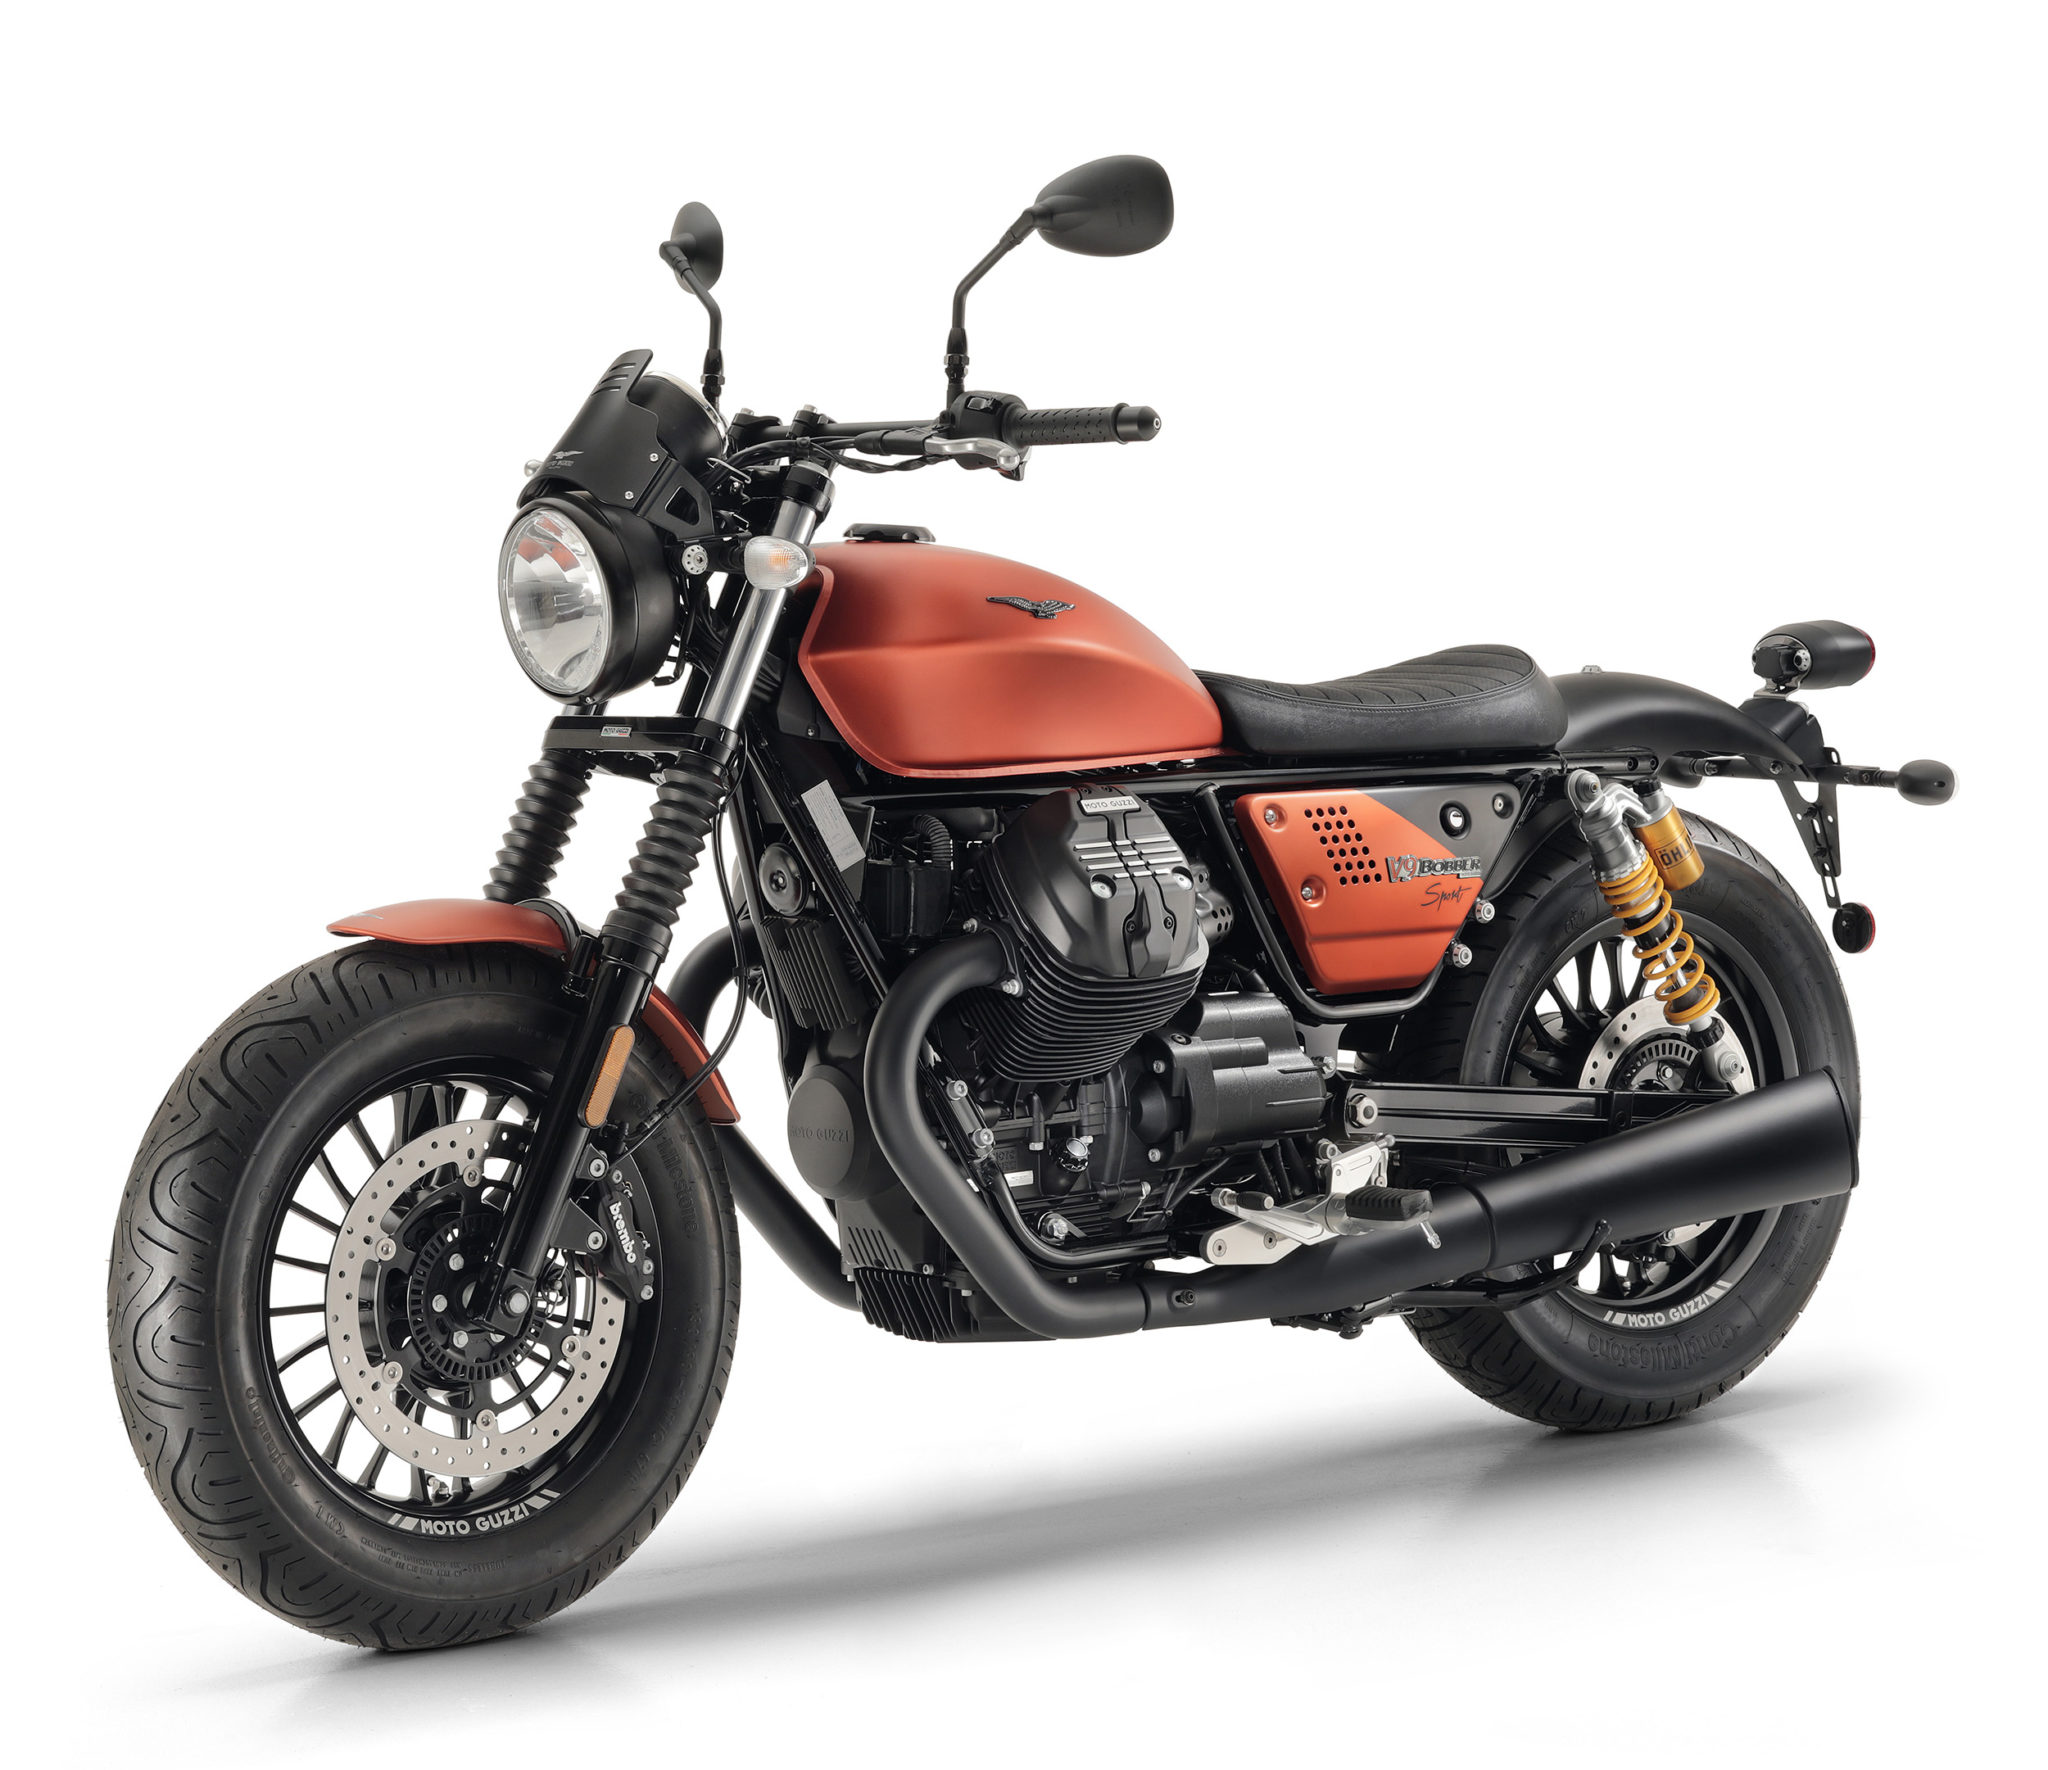 Moto Guzzi adds the Sport variant to the cool V9 Bobber line-up